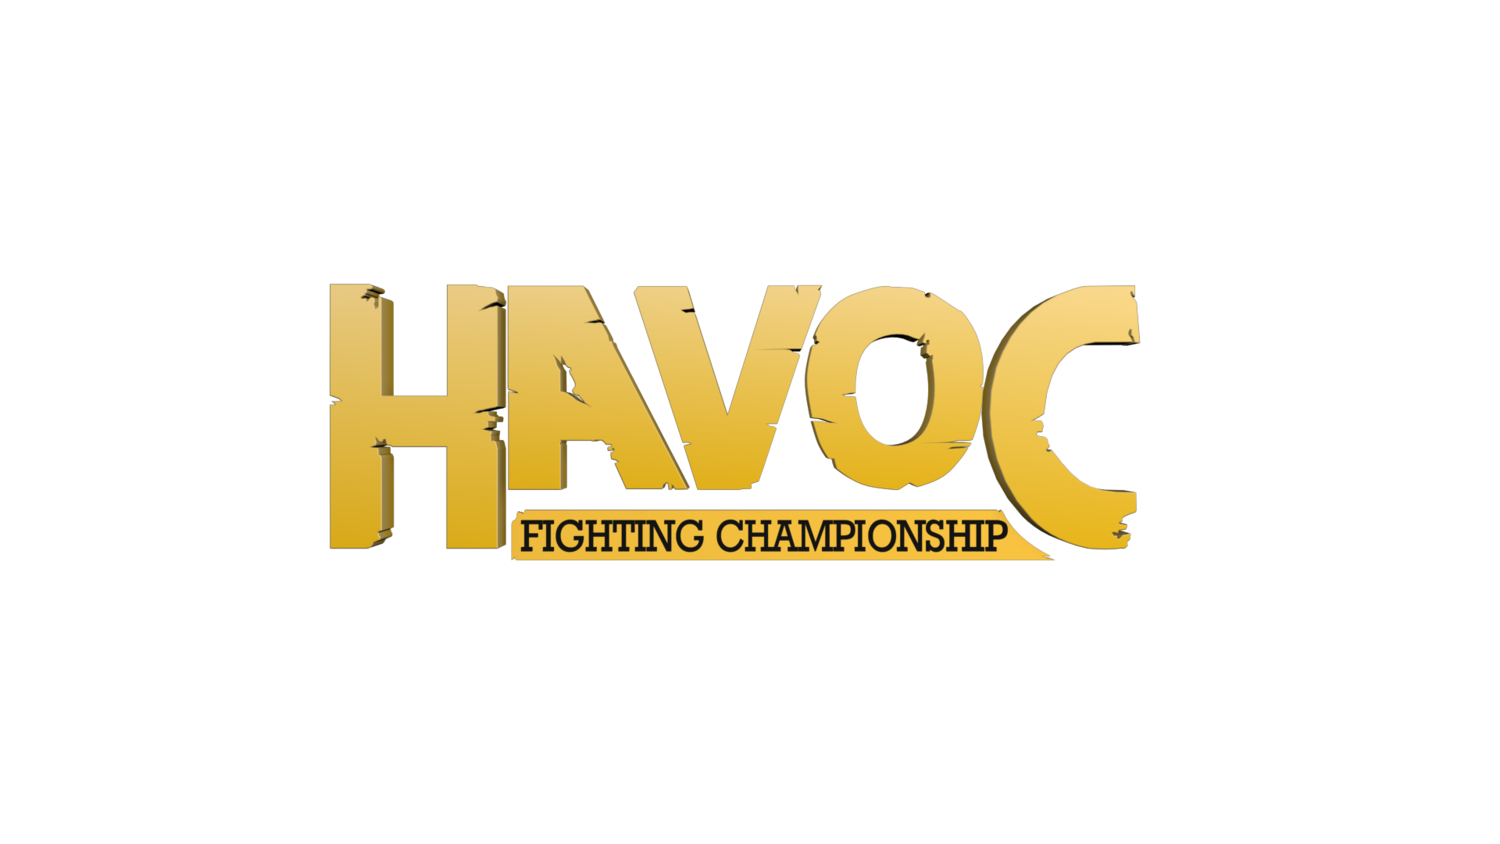 Havoc Fighting Championship